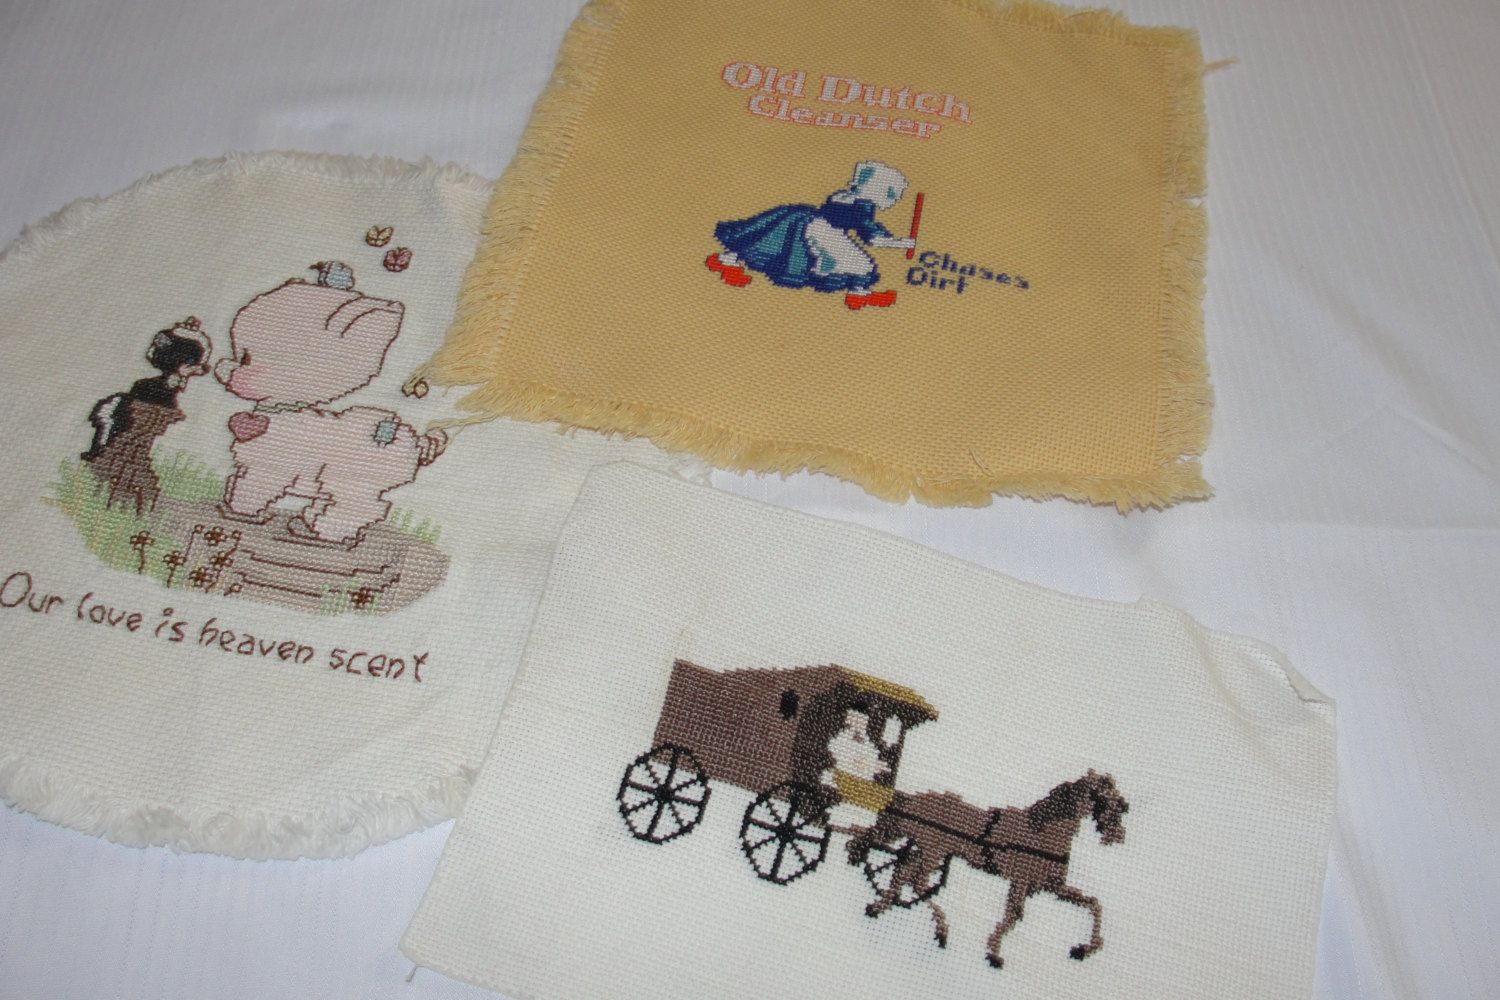 Vintage Embroidered Cross Stitch Lot of 3 Decoration/Advertising Pieces Horse & Carriage, Old Dutch Cleanser and Piggy with Skunk by TrinitysWorld on Etsy